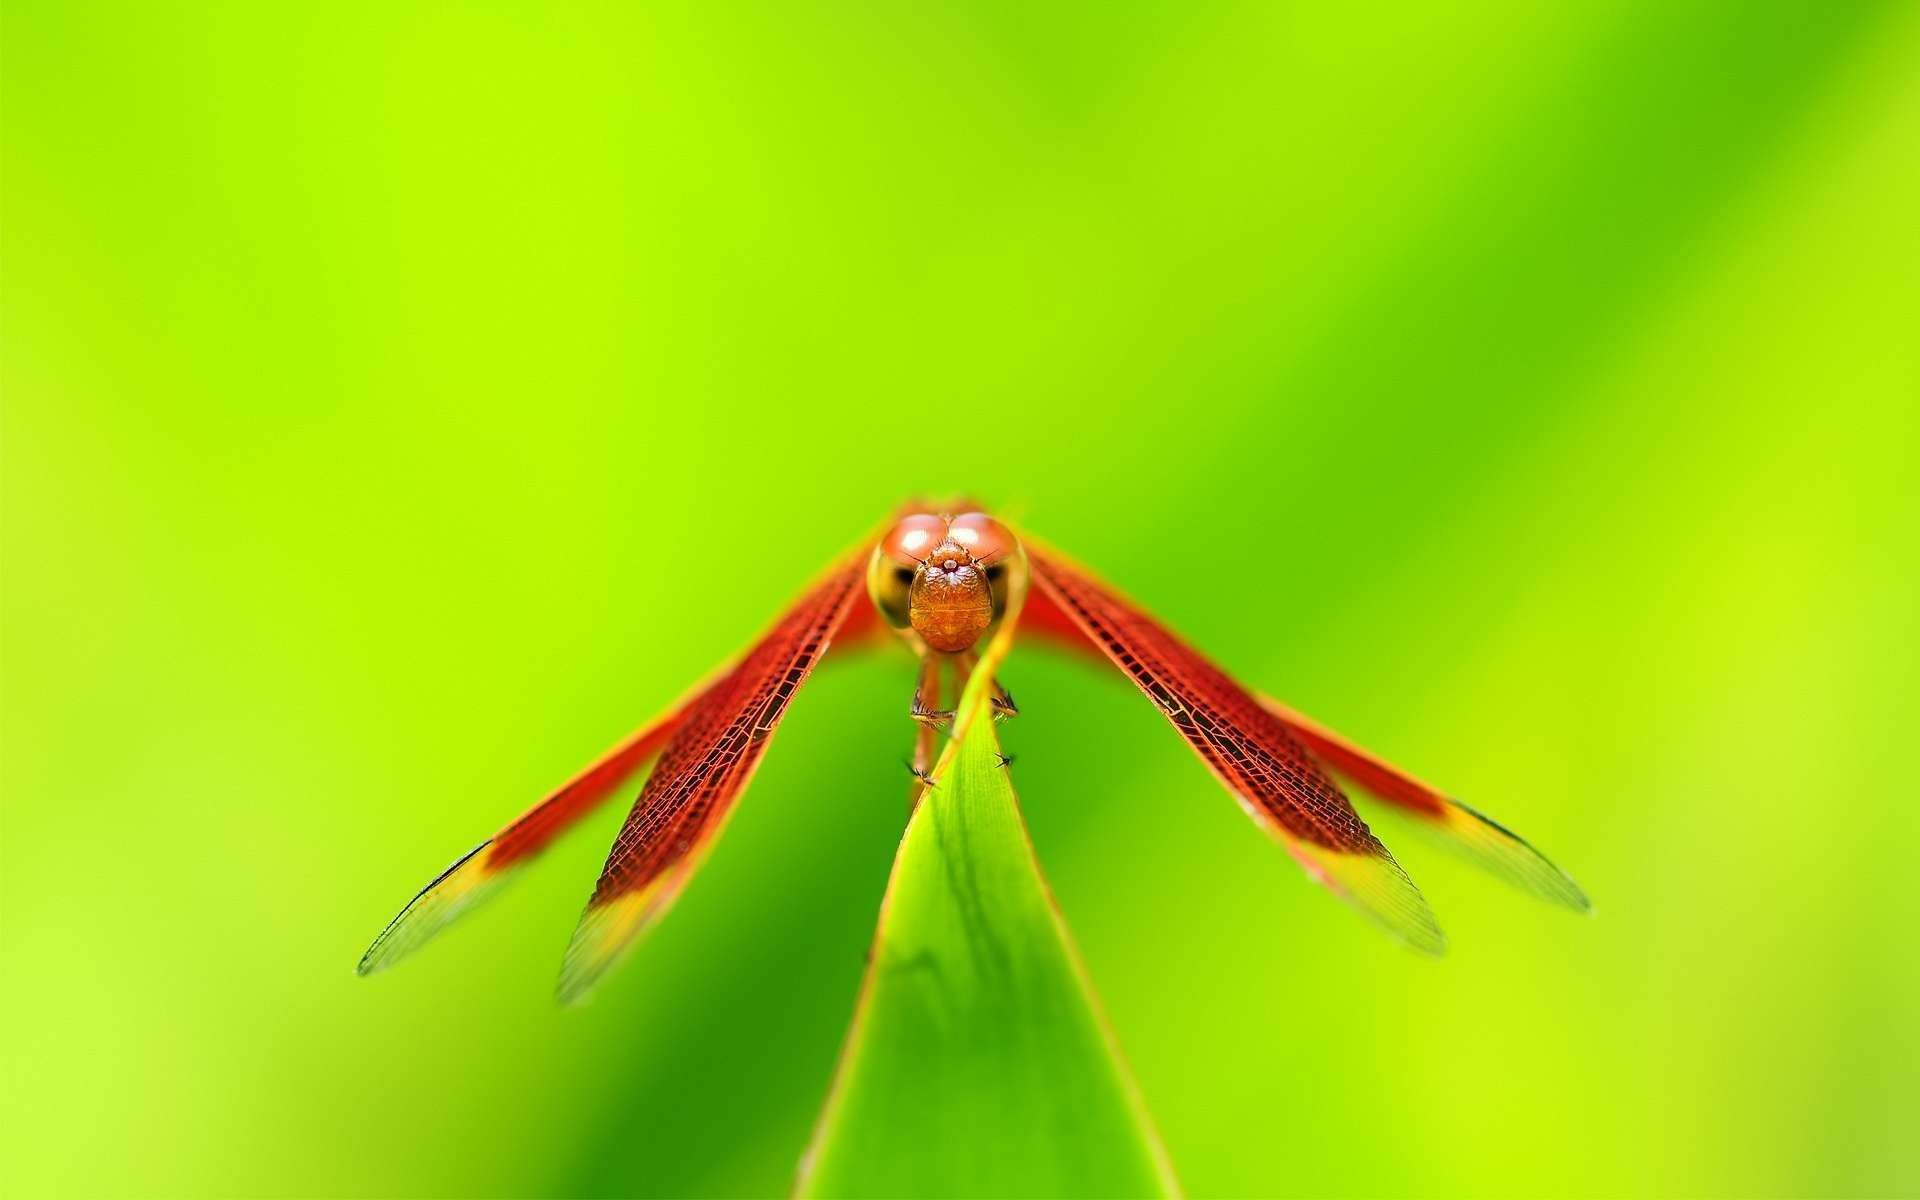 insect hd wallpaper